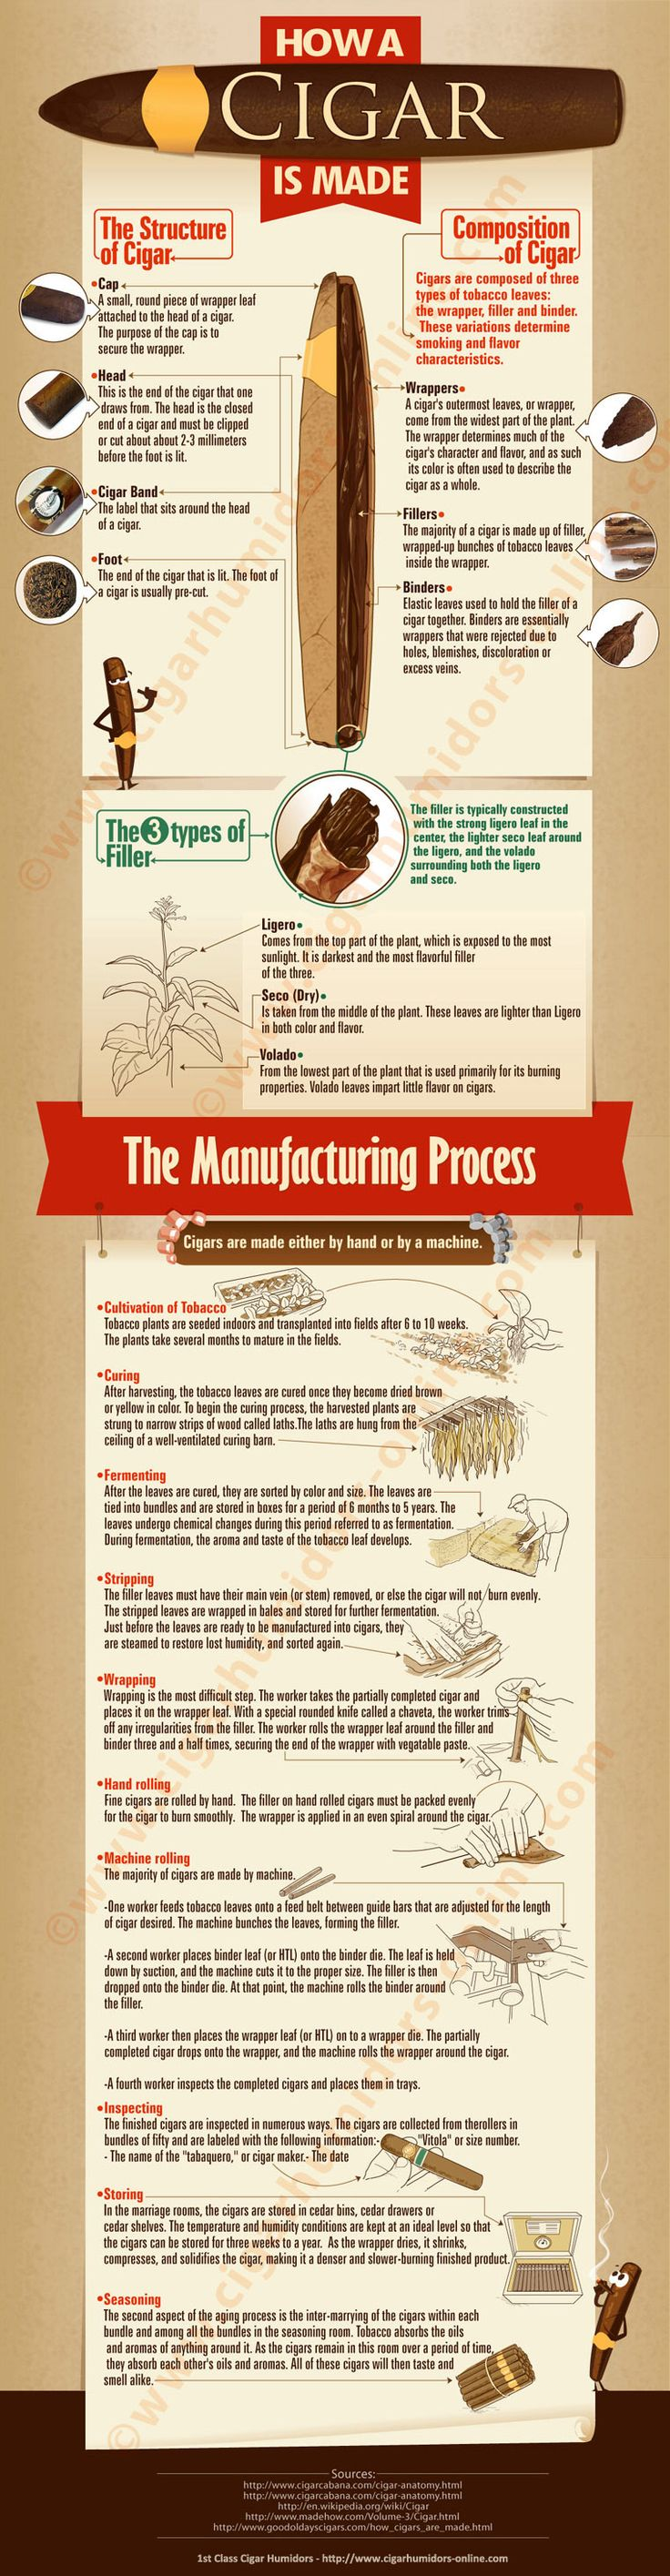 cigar infographics | How is a Cigar Made Infographic how-to-make-a-cigar-infographic ...